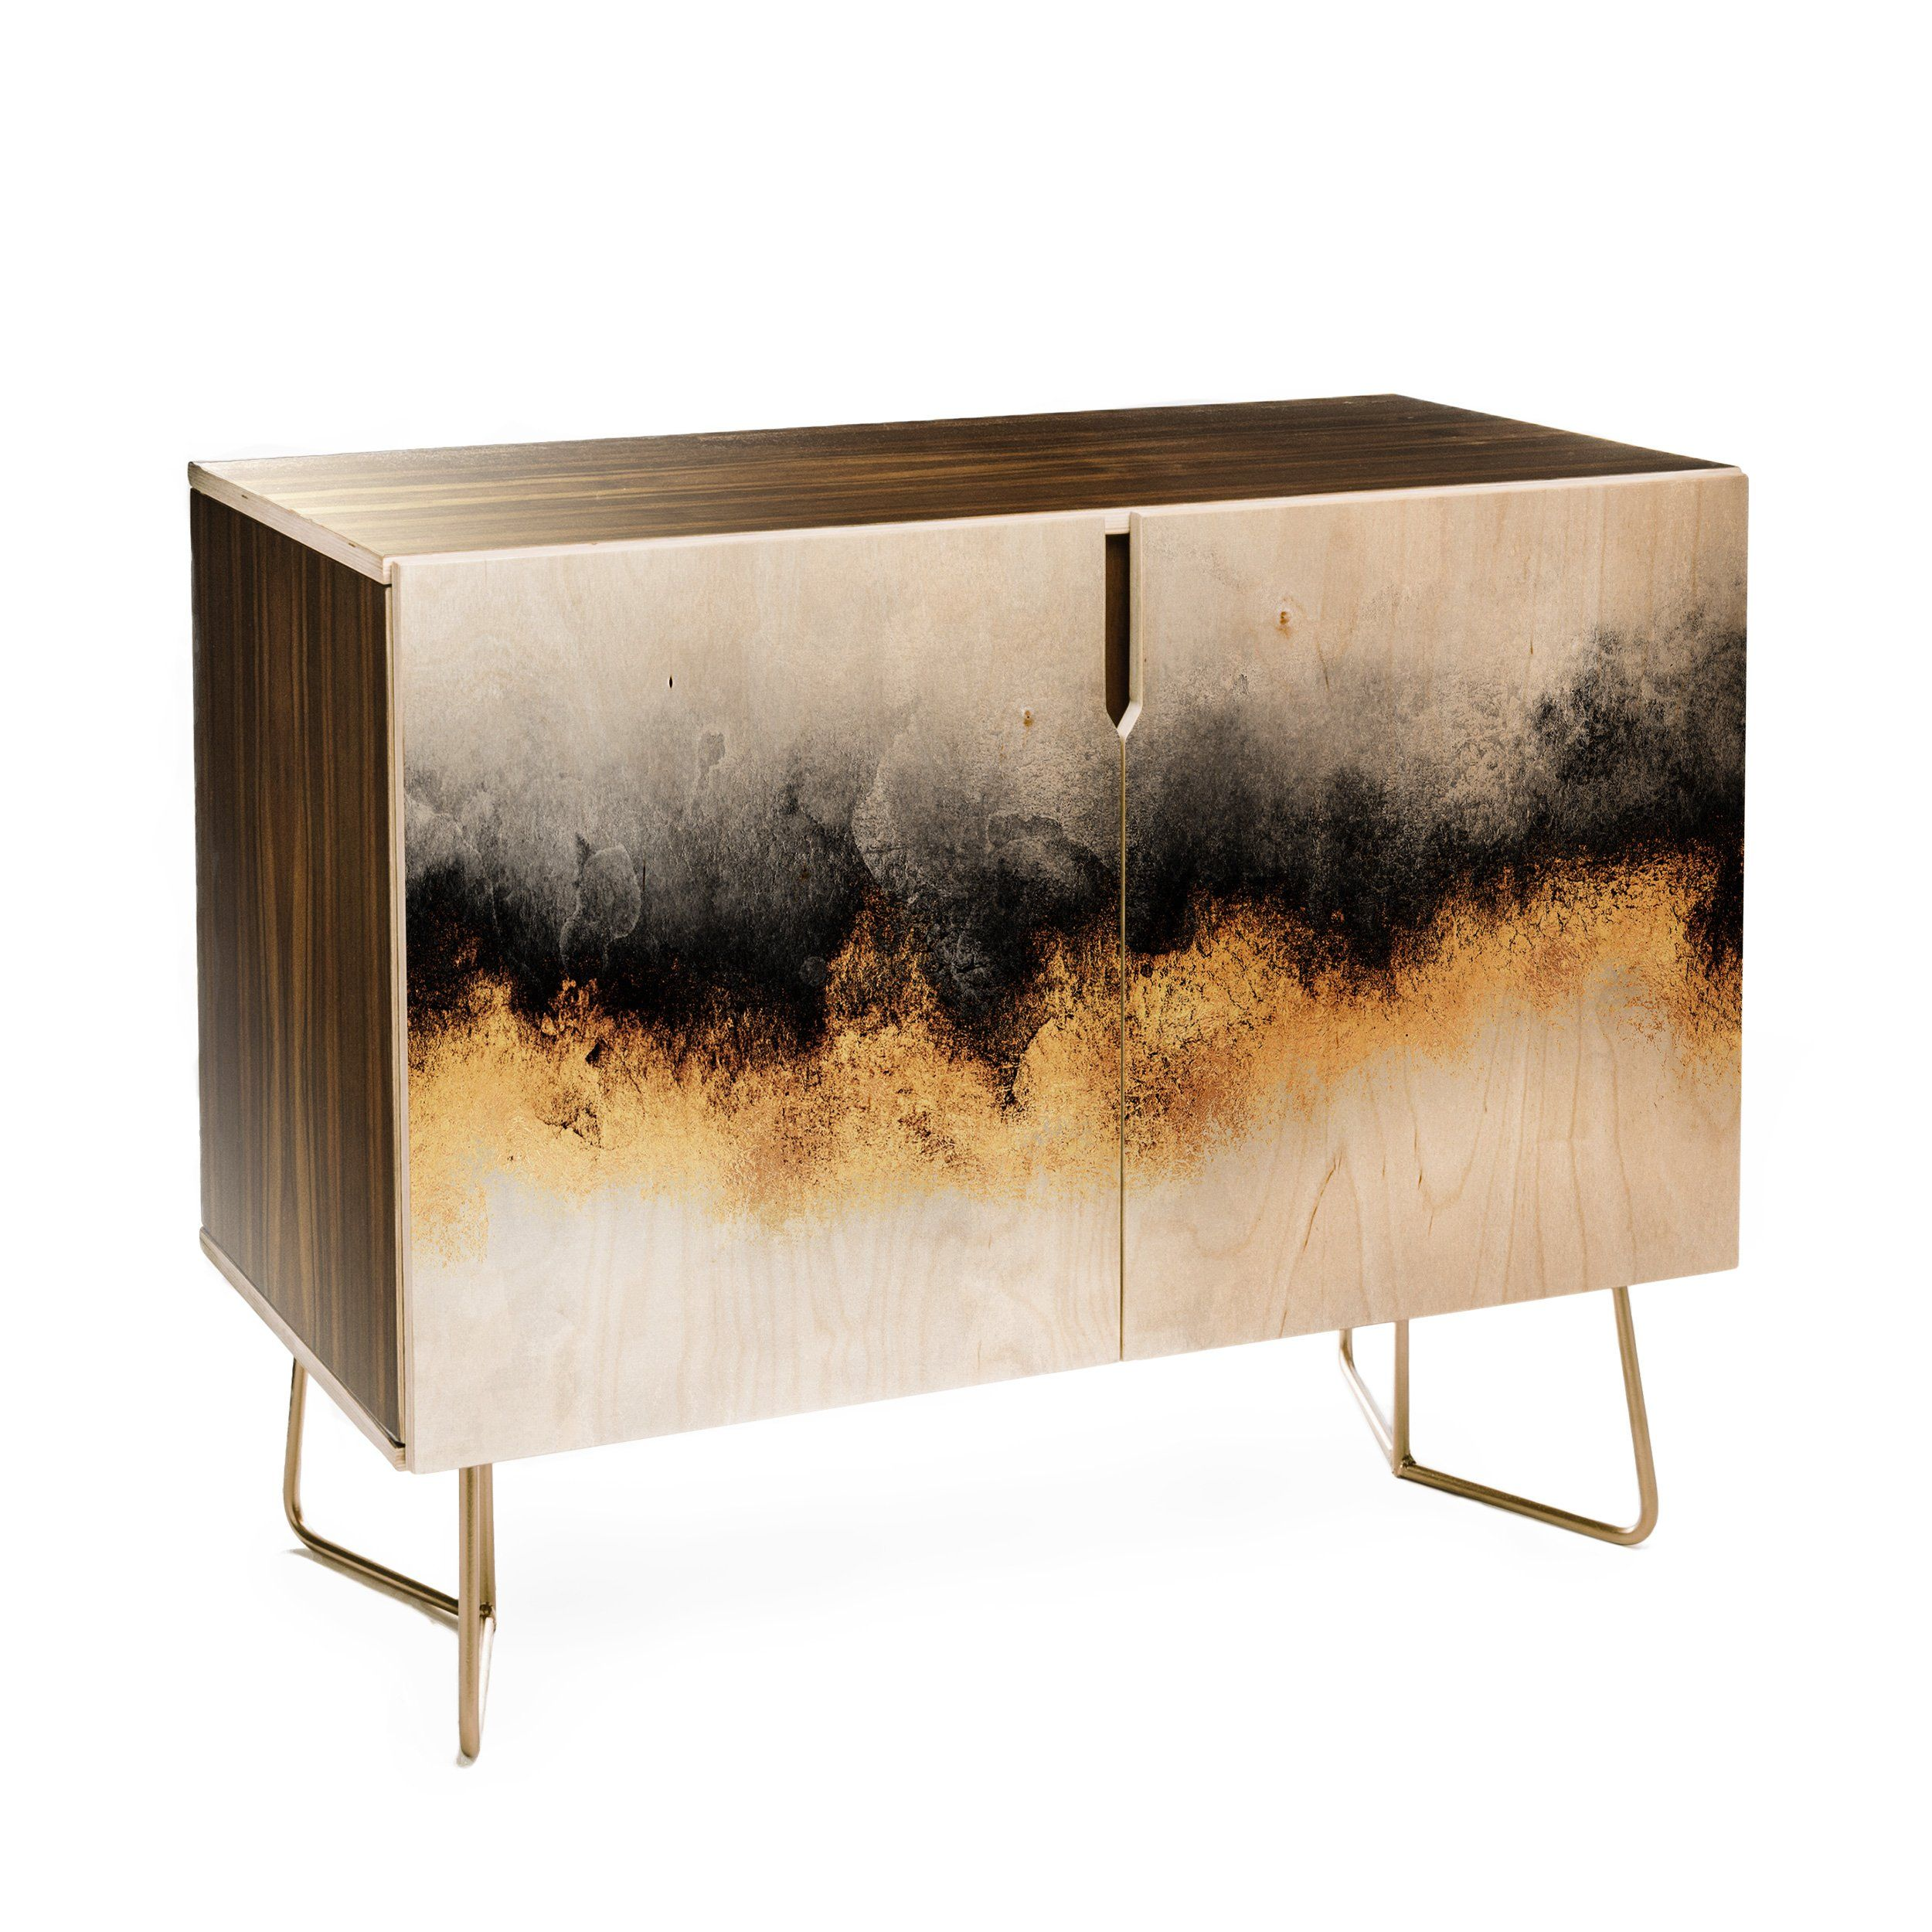 Black And Gold Sky Credenza Elisabeth Fredriksson With Images